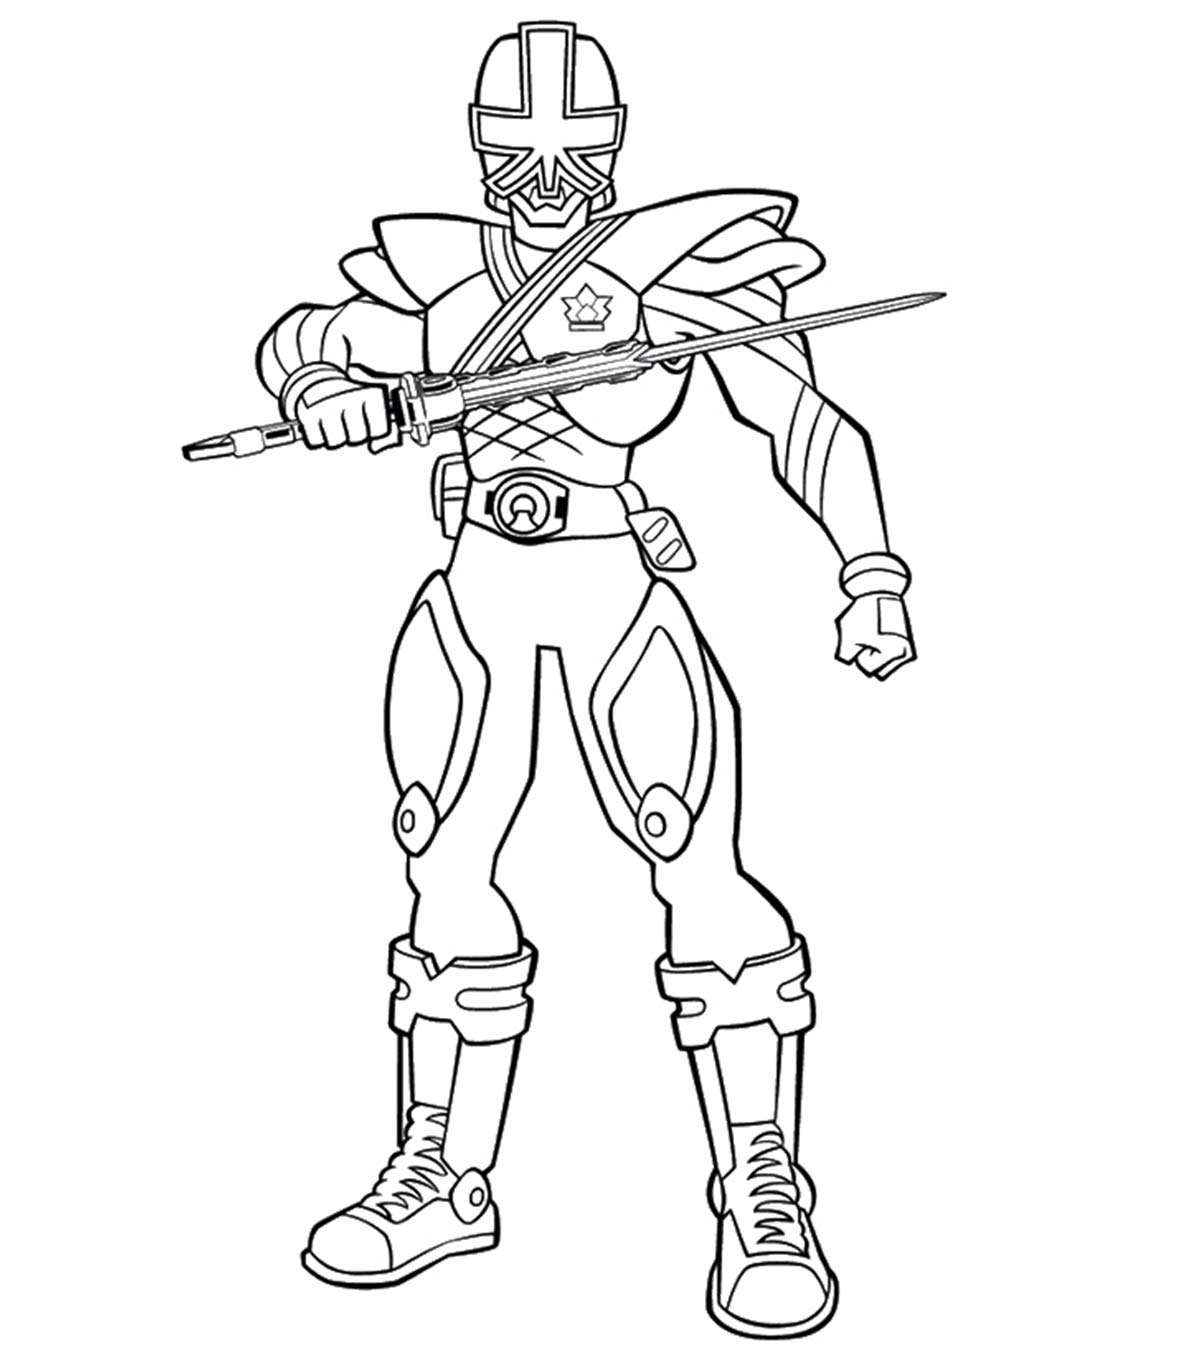 Top 25 Free Printable Power Rangers Megaforce Coloring Pages